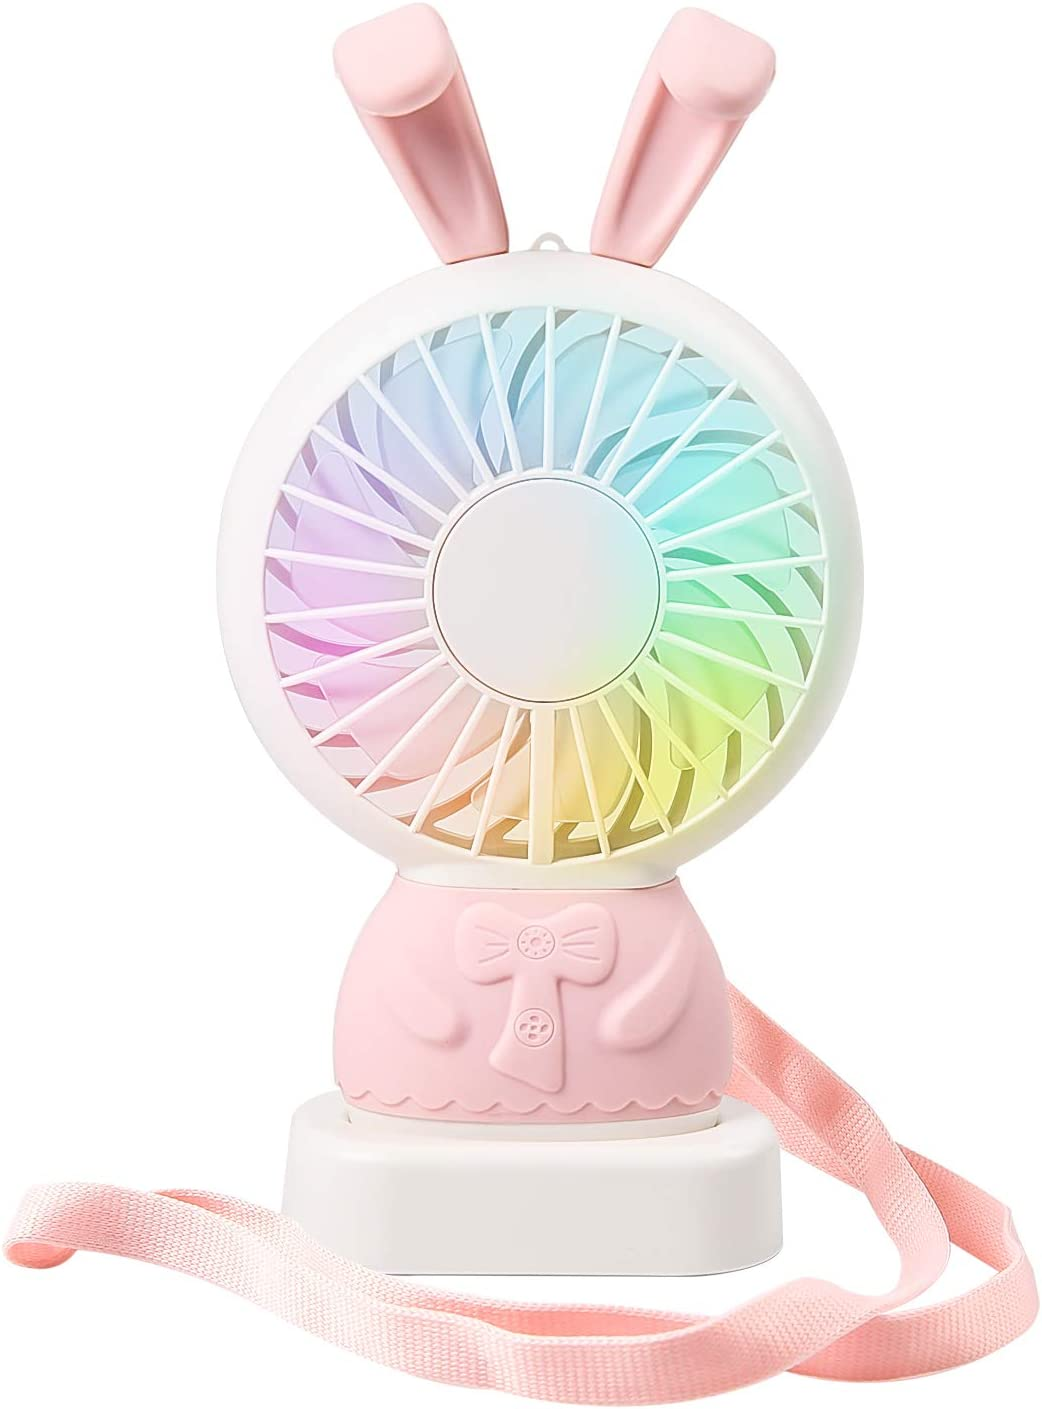 Mini Fan – Personal Handheld Portable Fan, Small Fan with Multi-Color LED Light 2 Adjustable Speeds Standing Base for House Travel Camping and Children Gifts – Pink Rabbit